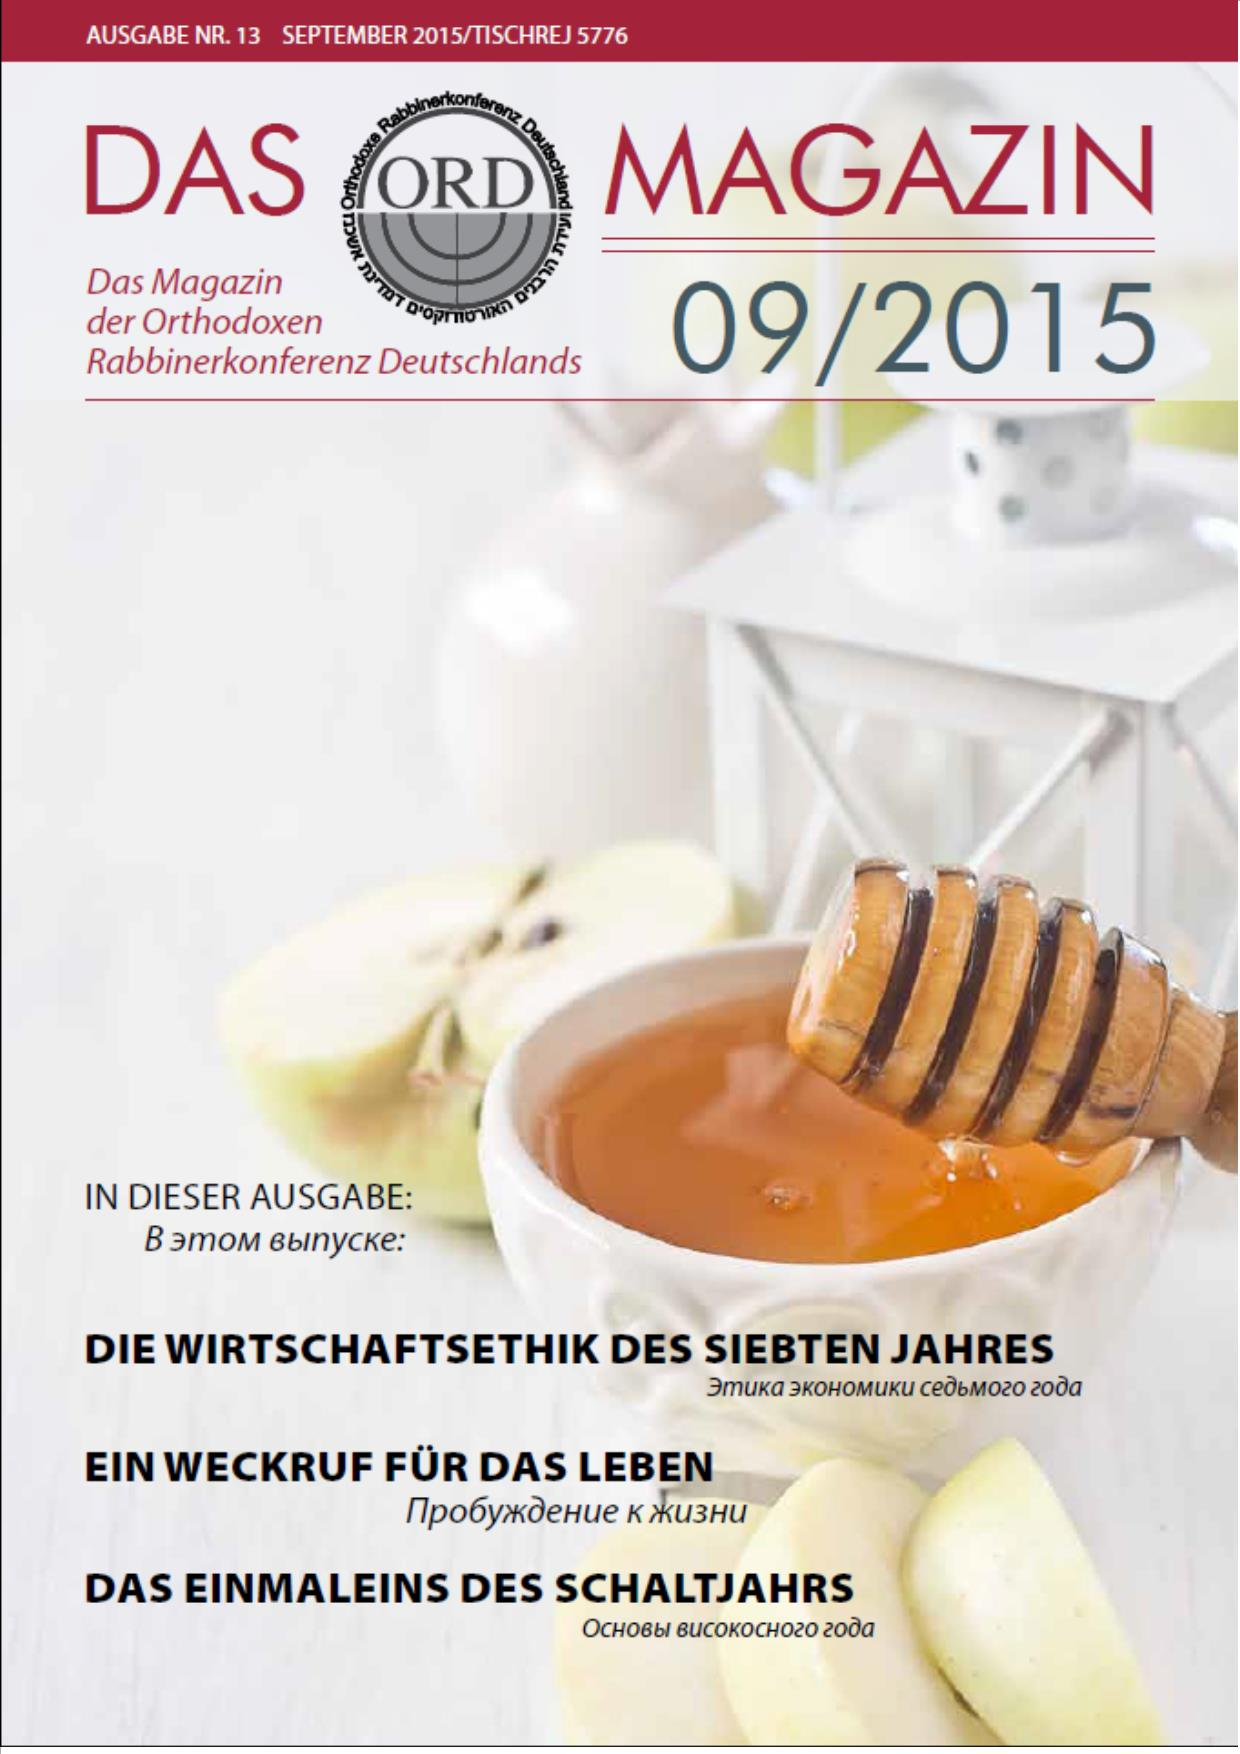 ORD Magazin 09/2015 Cover